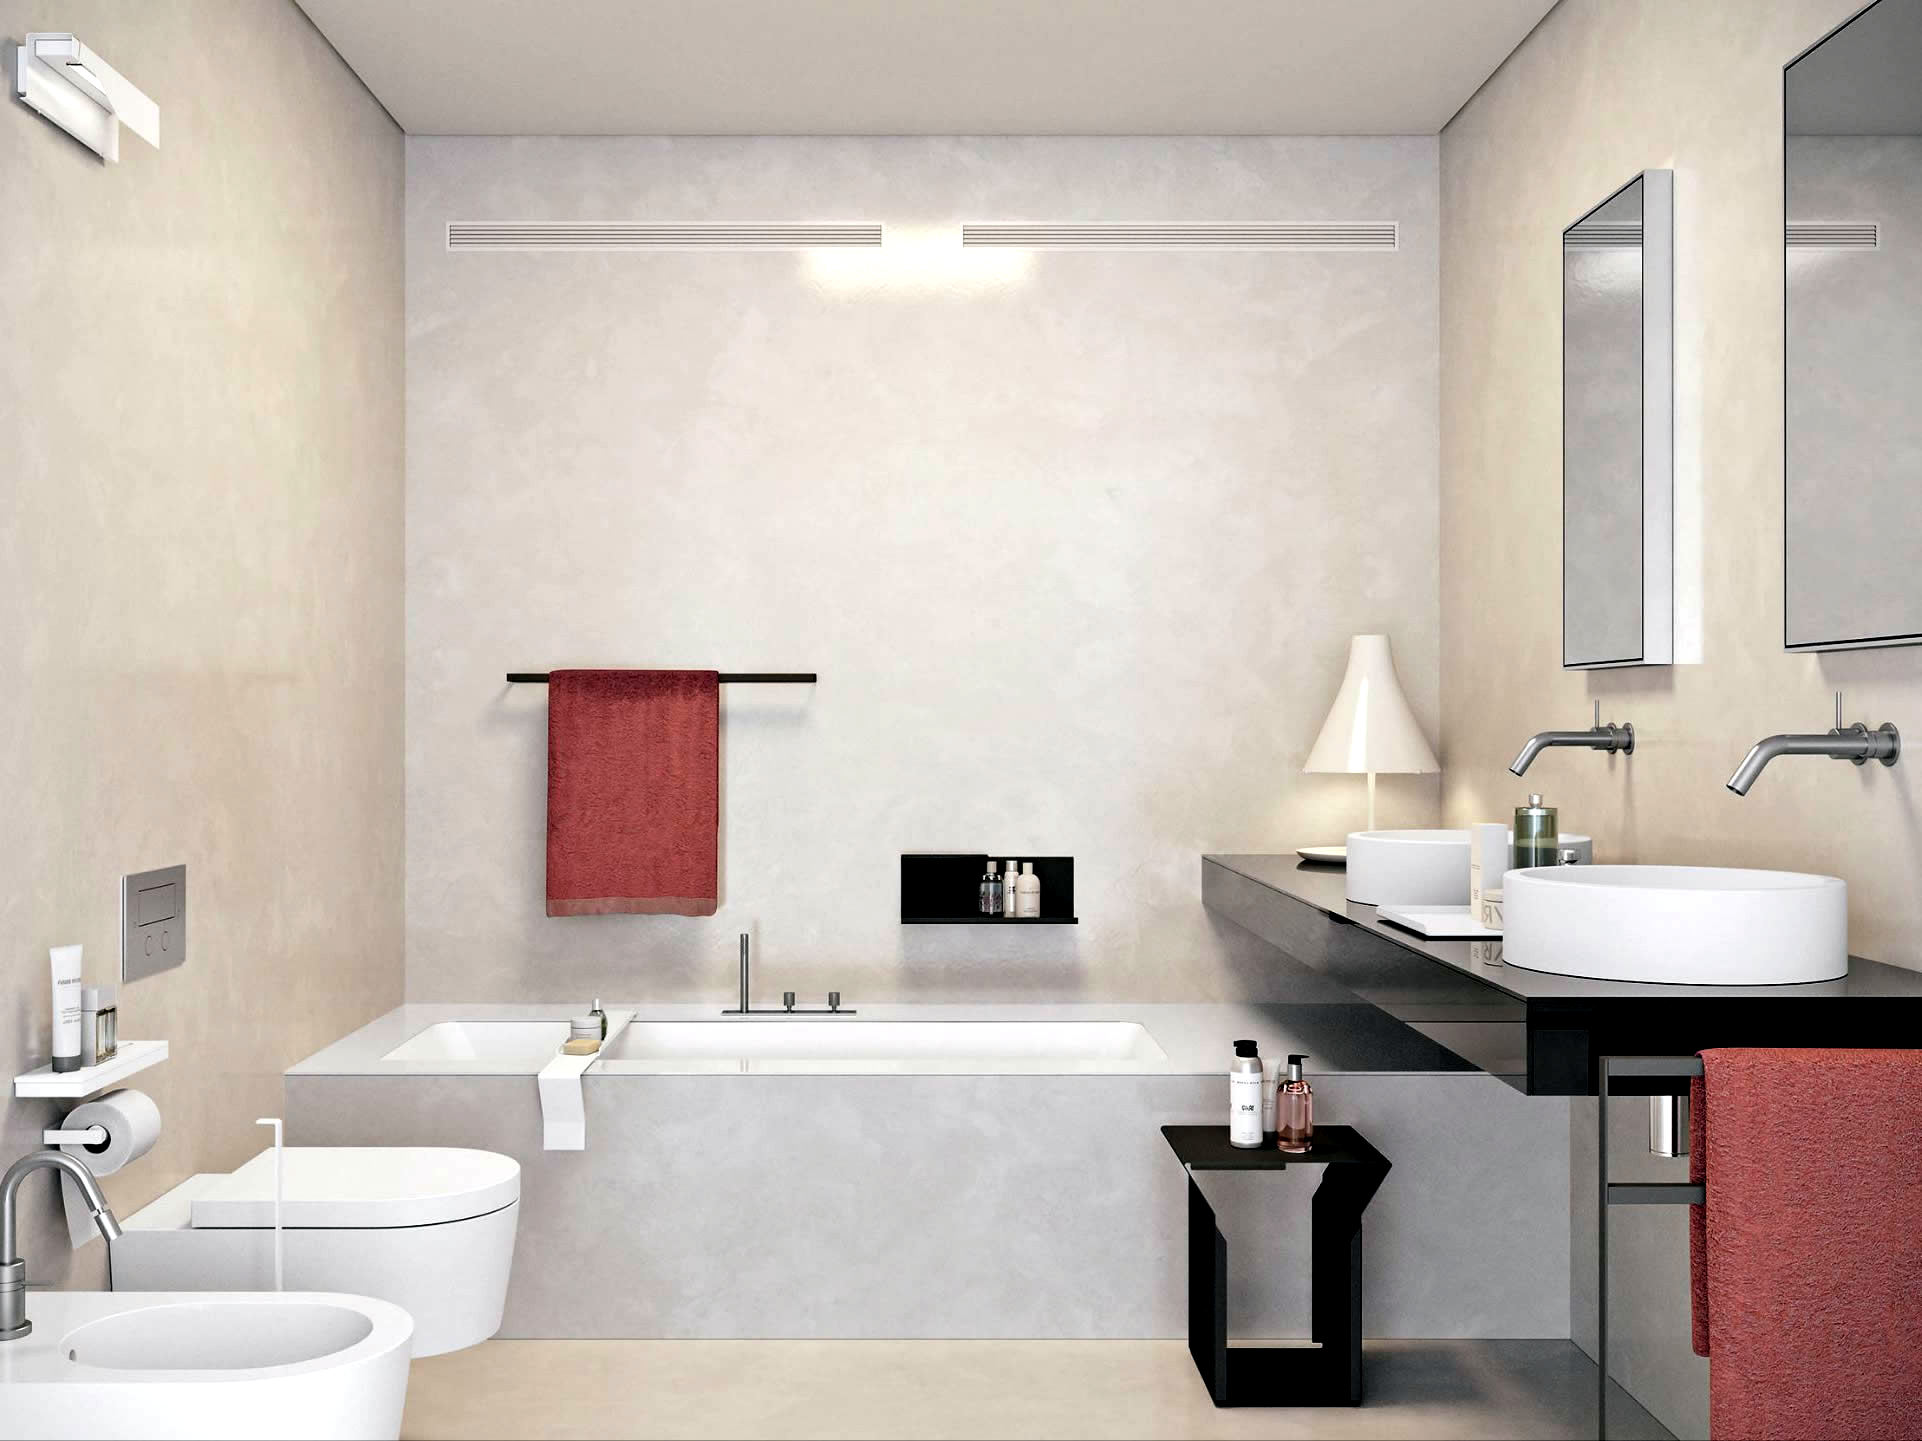 Badezimmer - Modern Built-in bath tub with space saving design